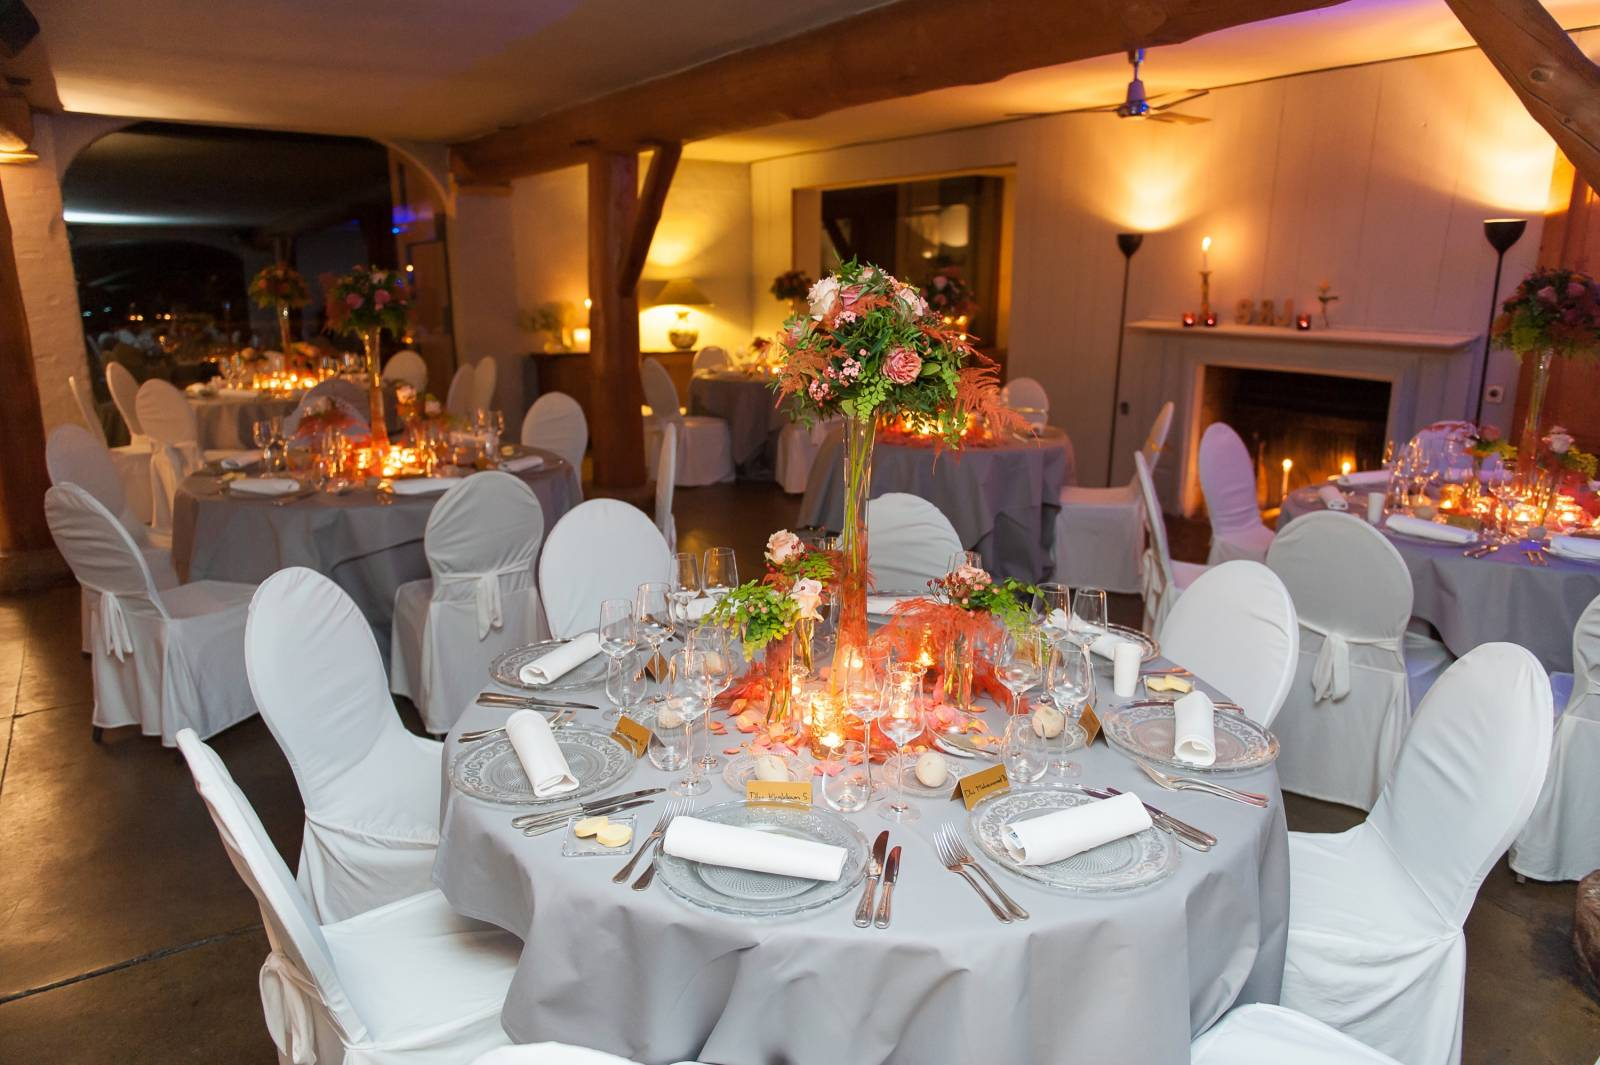 J&M Catering - Cateraar - Traiteur - House of Events - 27